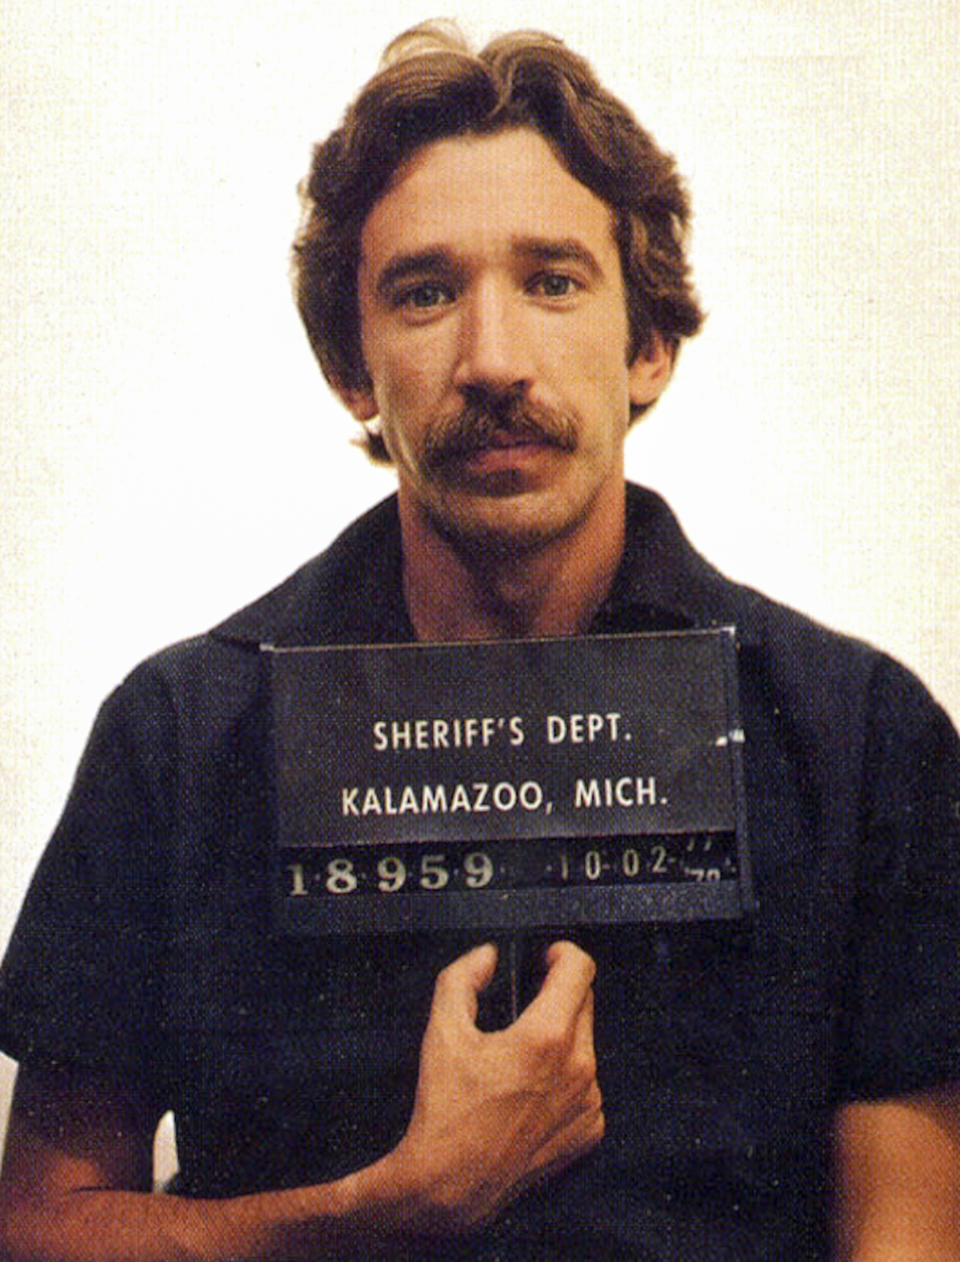 In this handout, American actor and comedian Tim Allen in a mug shot following his arrest for cocaine possession, Kalamazoo, Michigan, US, 2nd October 1978. (Photo by Kypros/Getty Images)